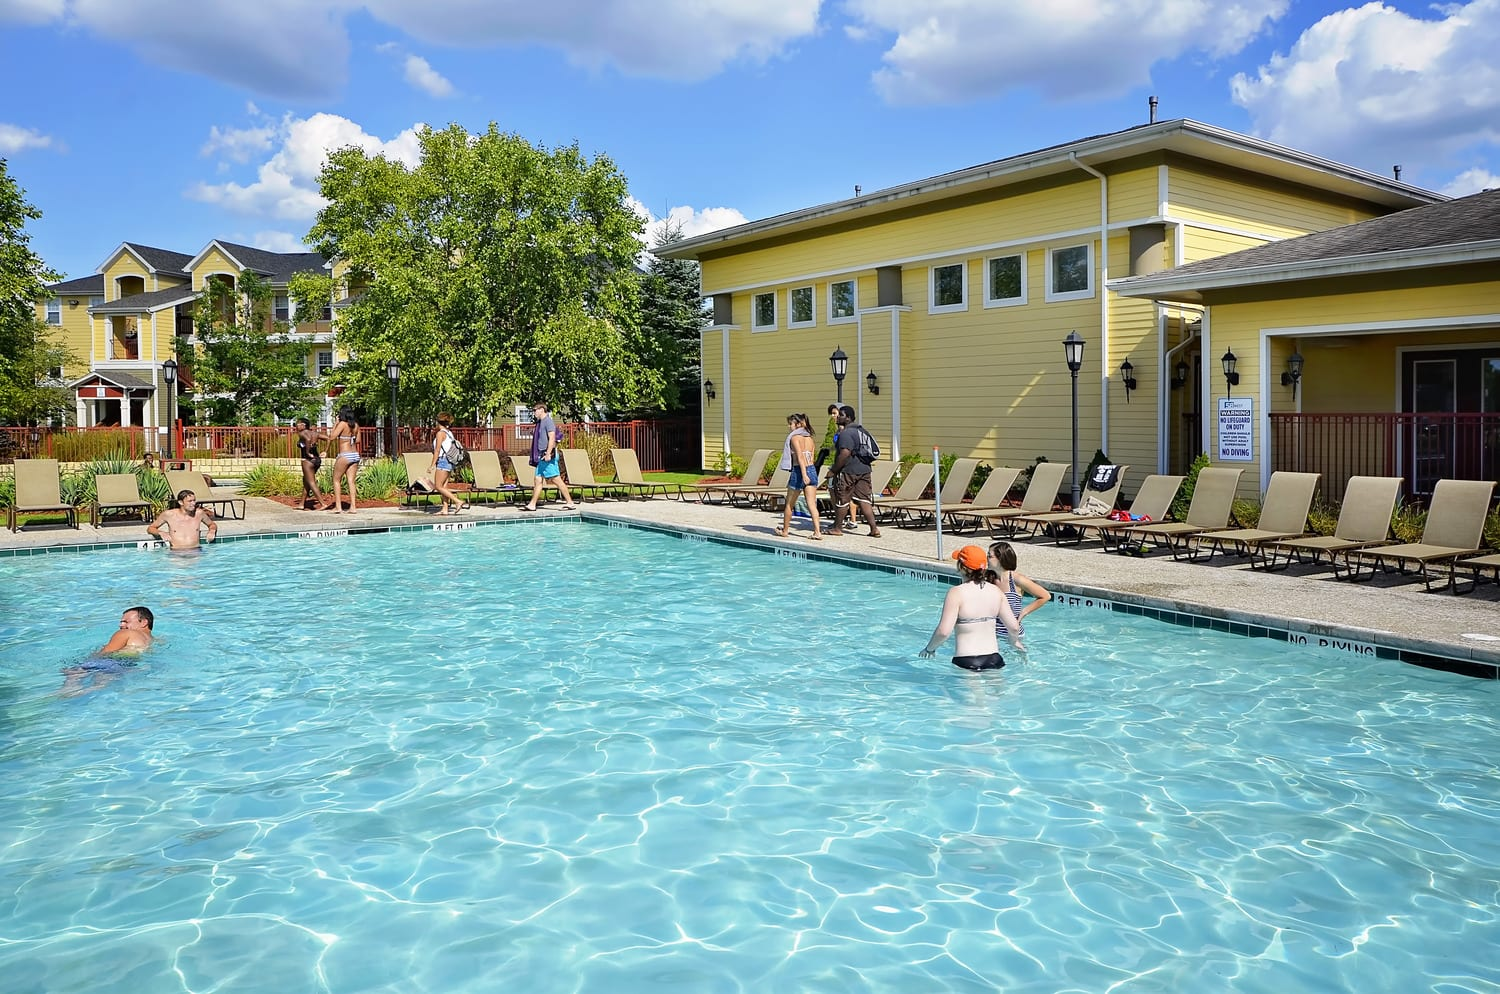 Pool At off-Campus Student Housing